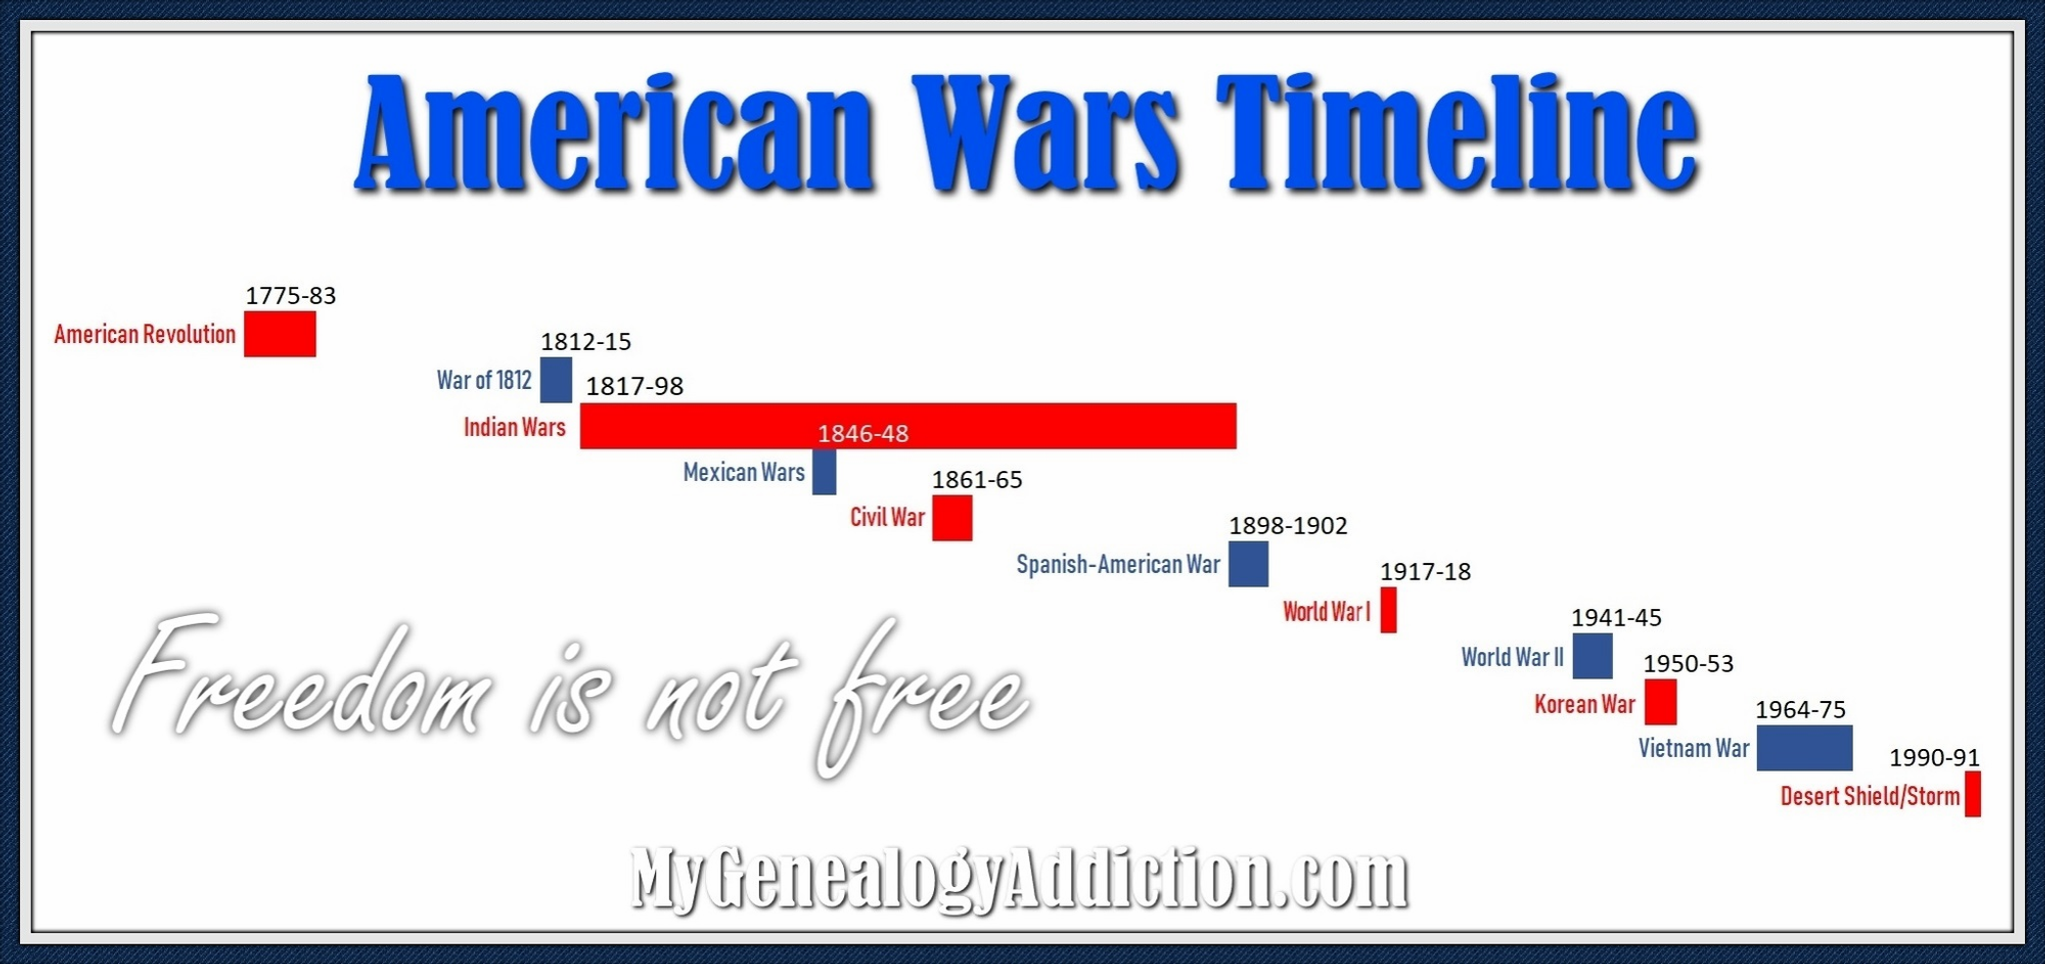 American Wars Timeline And Statistics In